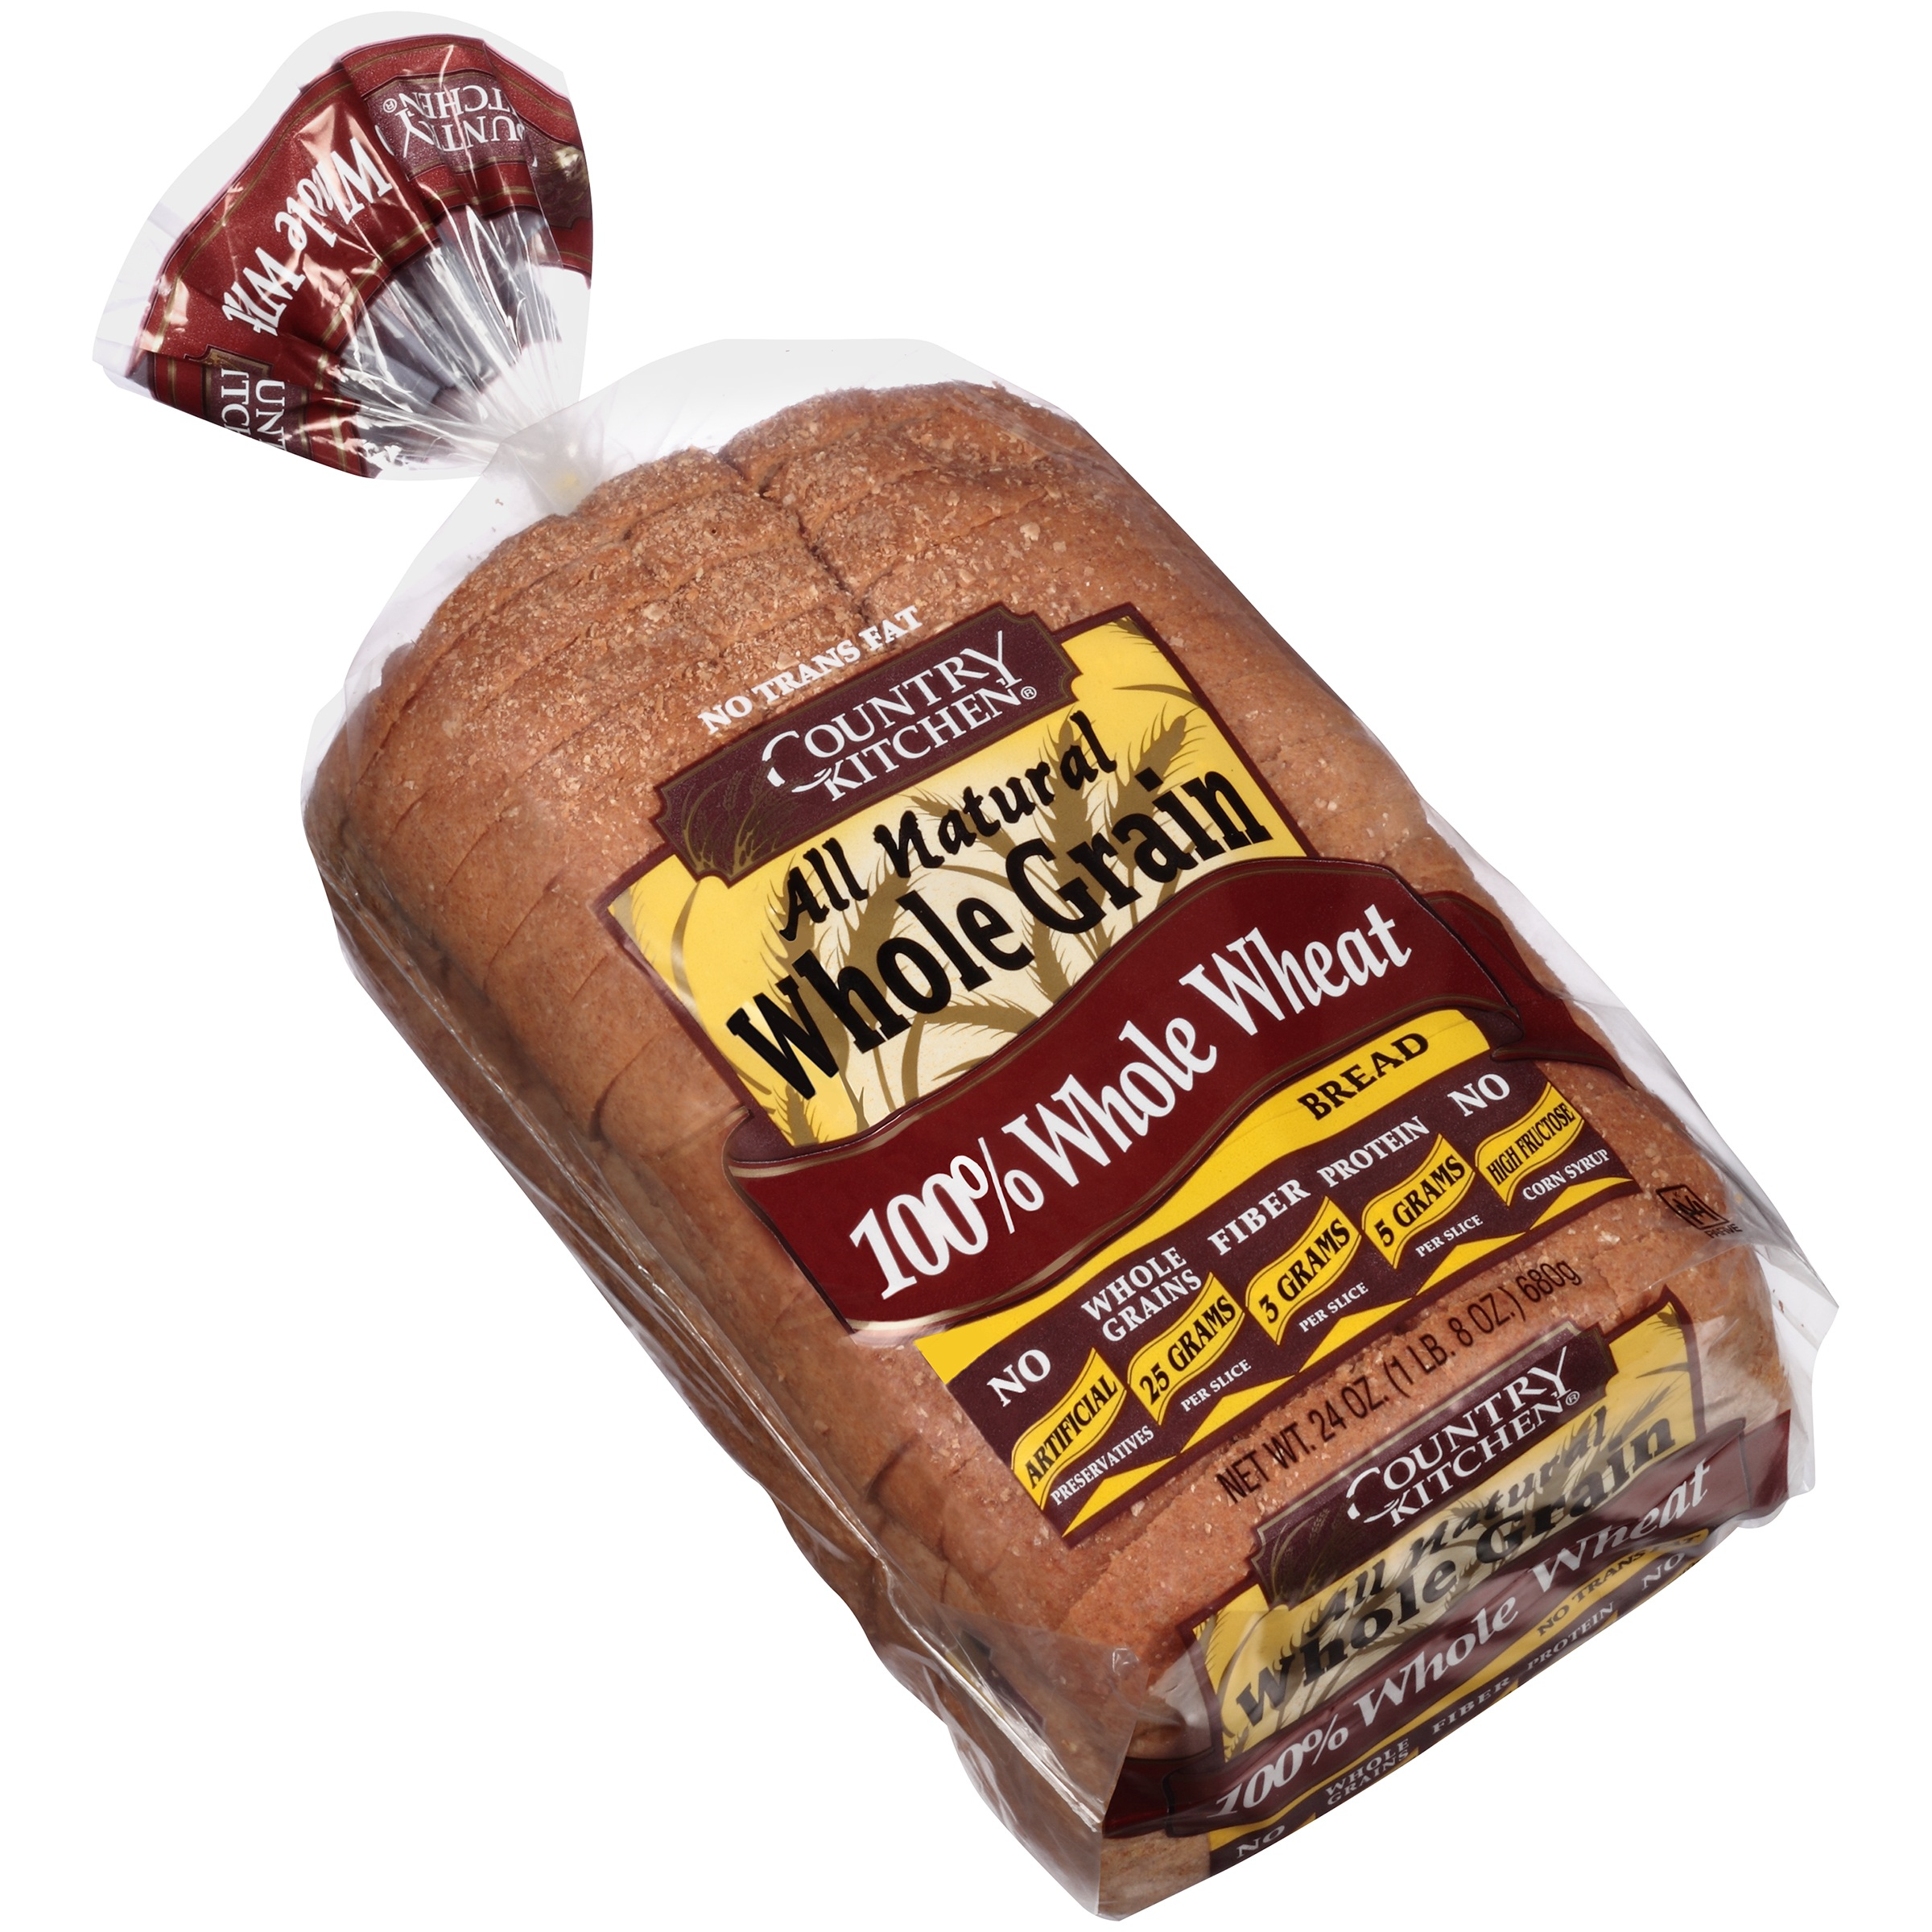 Country Kitchen All Natural Whole Grain 100 Wheat Bread 24 Oz